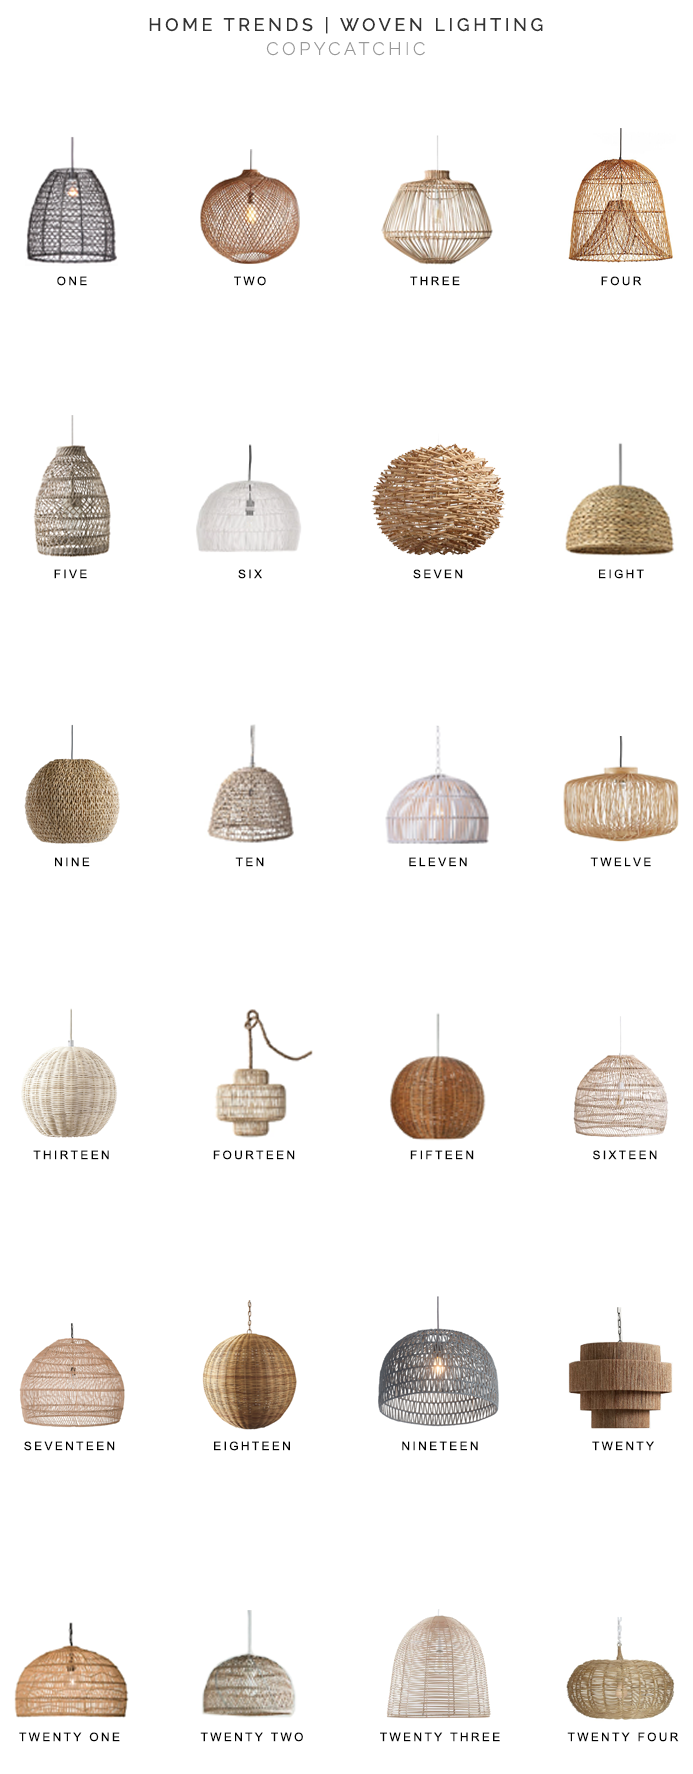 Home Trends Woven Lighting Copycatchic